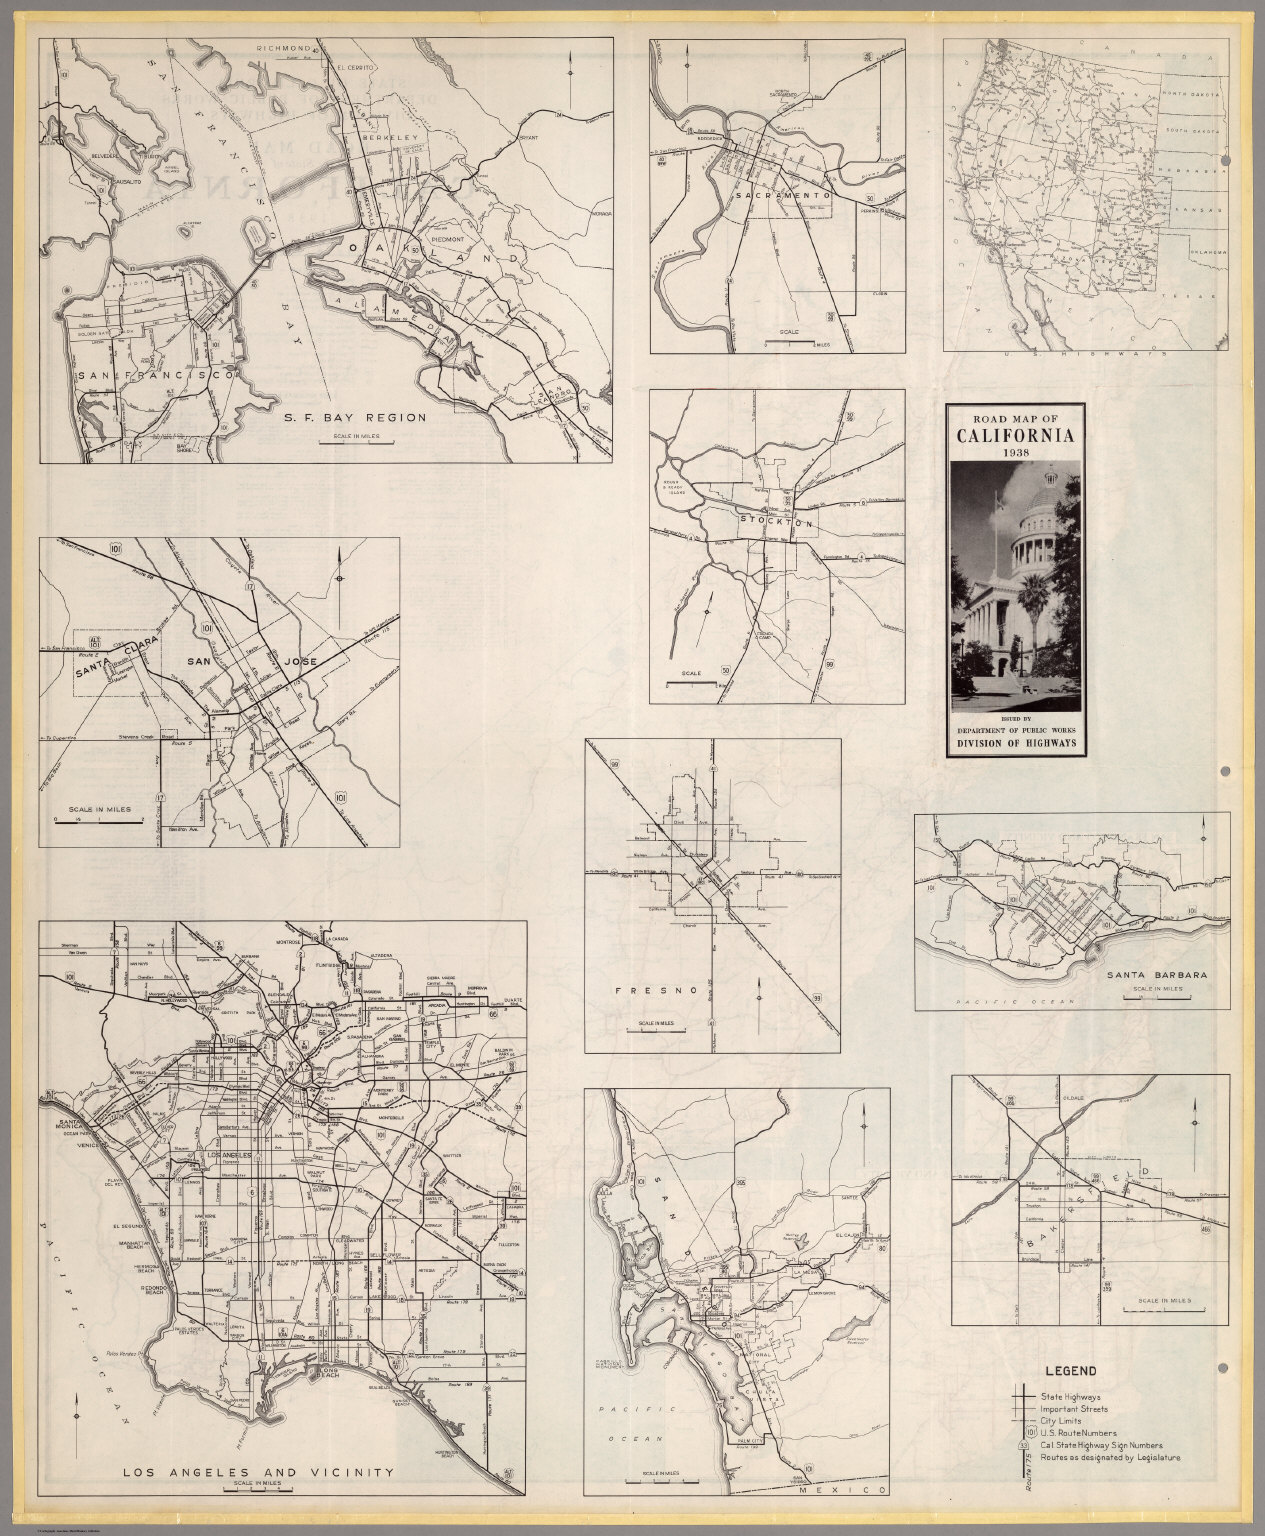 (Verso) Road Map of the State of California, 1938.